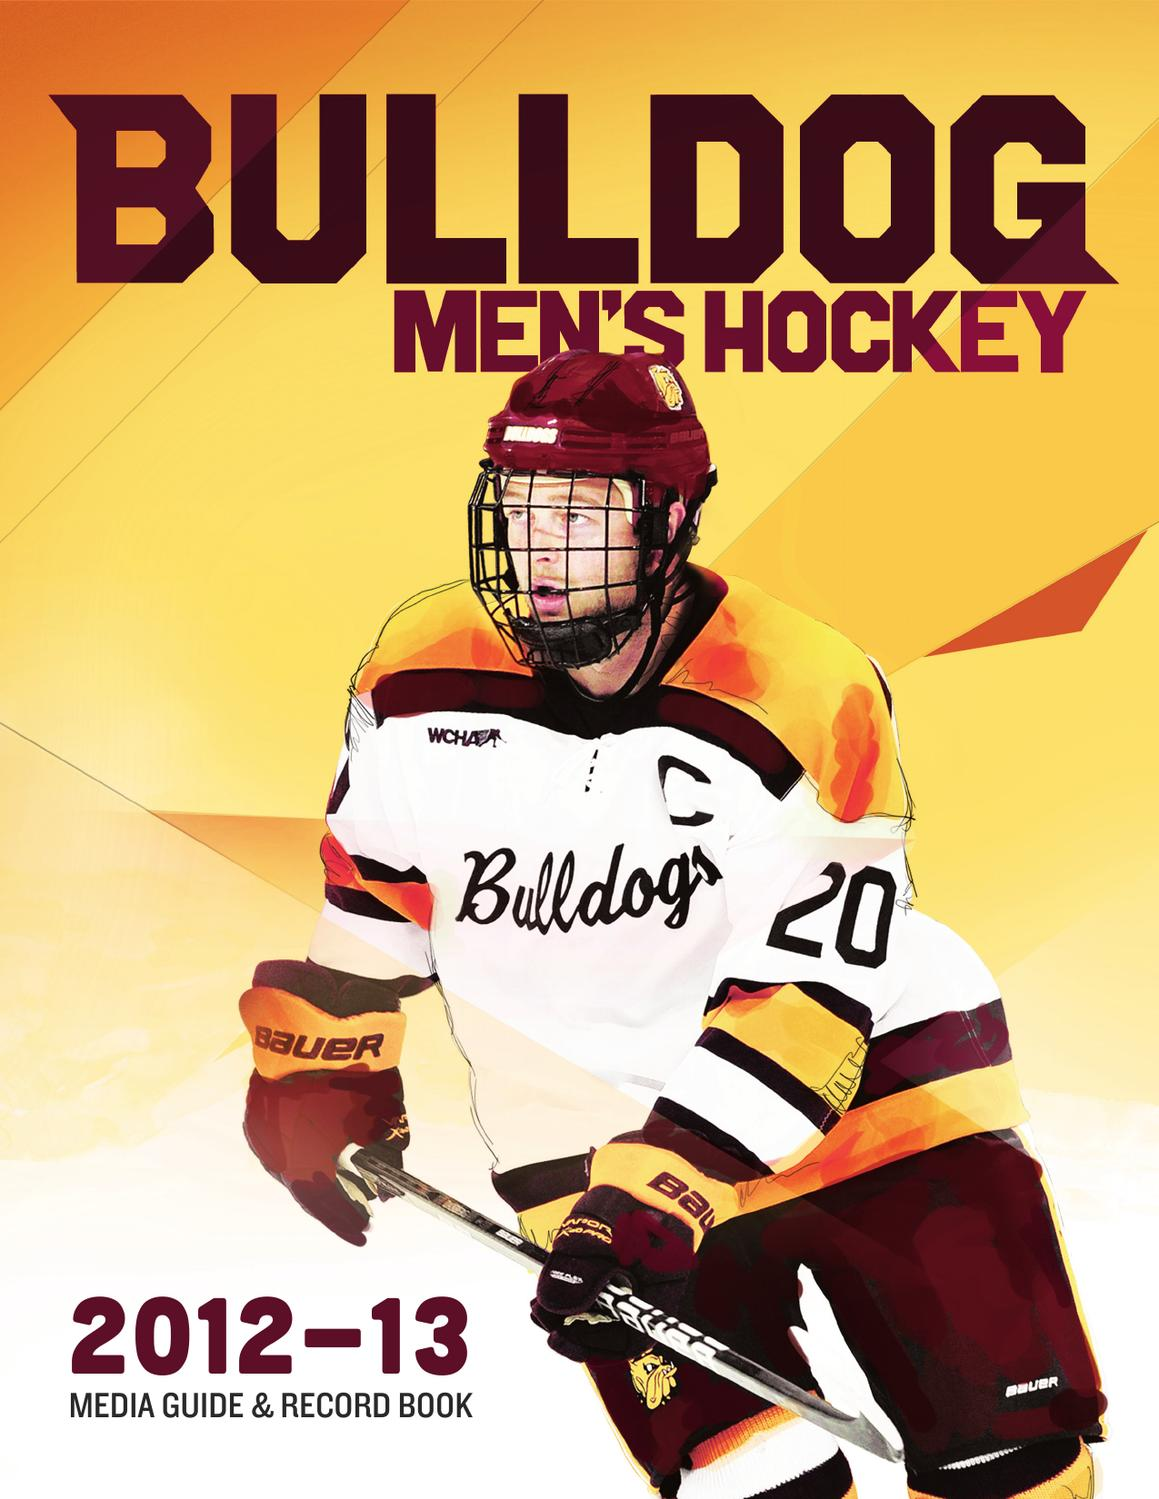 UMD Men s Hockey Media Guide 2012-13 by UMD Bulldogs - issuu 80fa6d22d